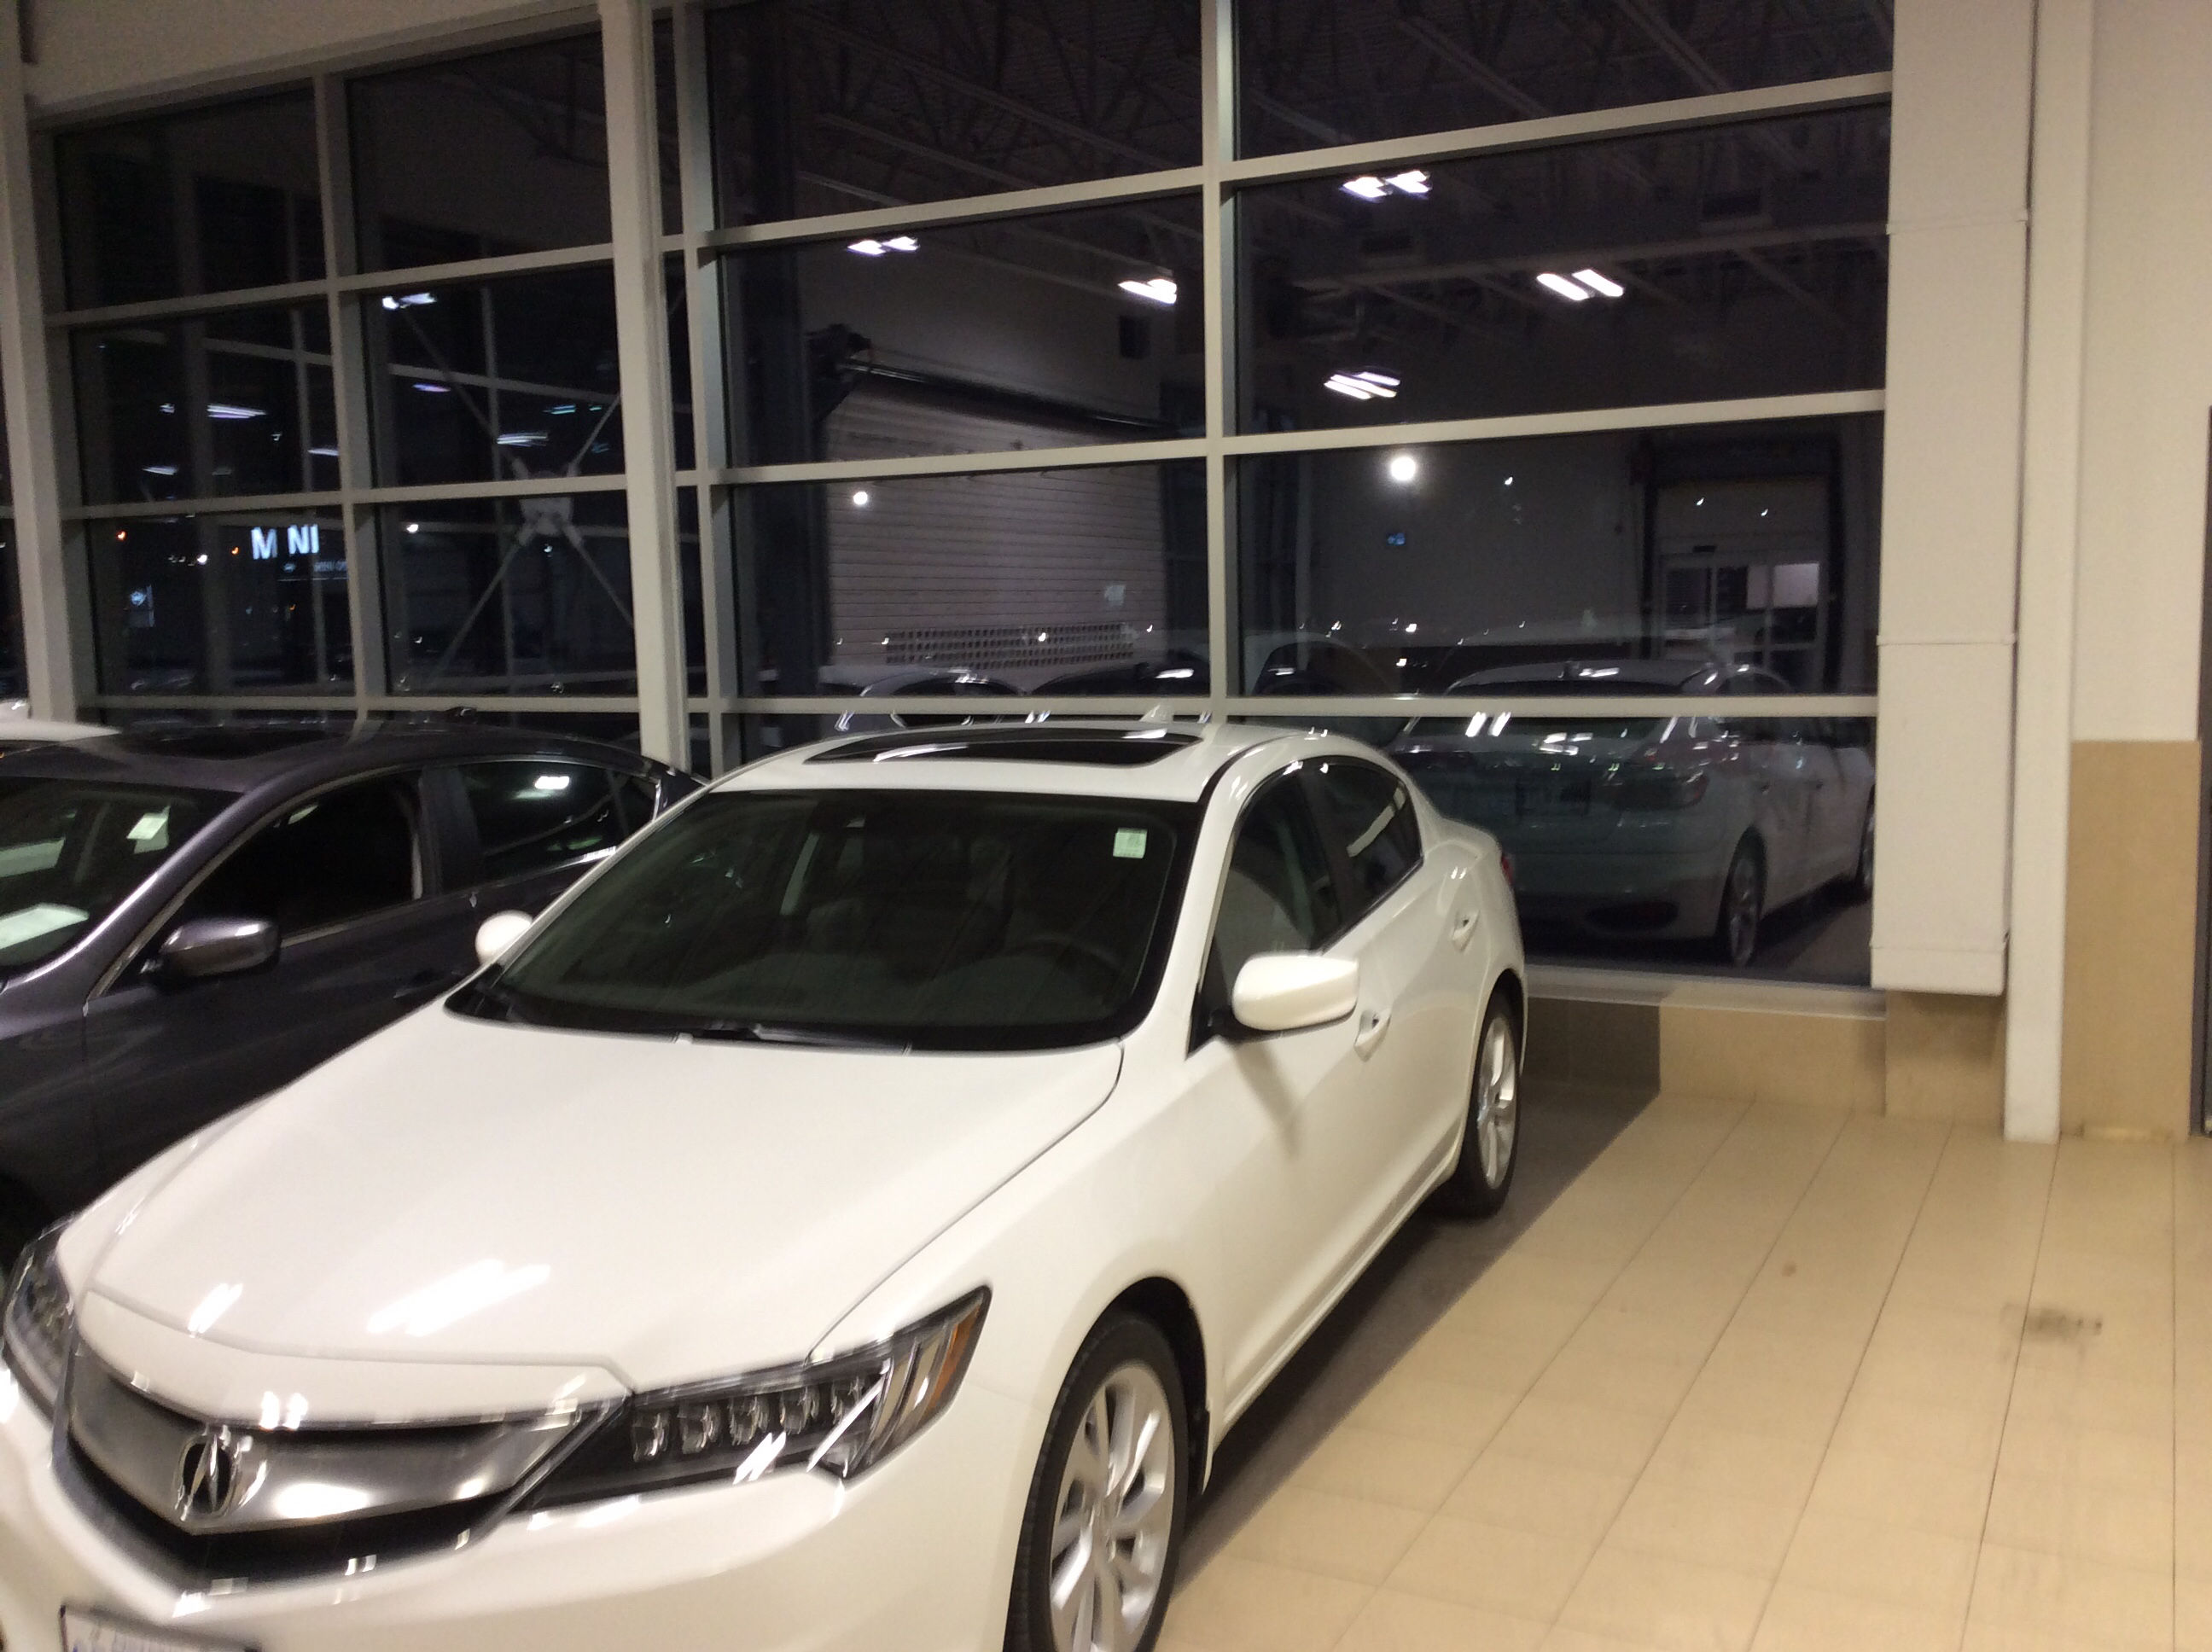 camco acura thank you tommy by debbie scott camco acura in ottawa